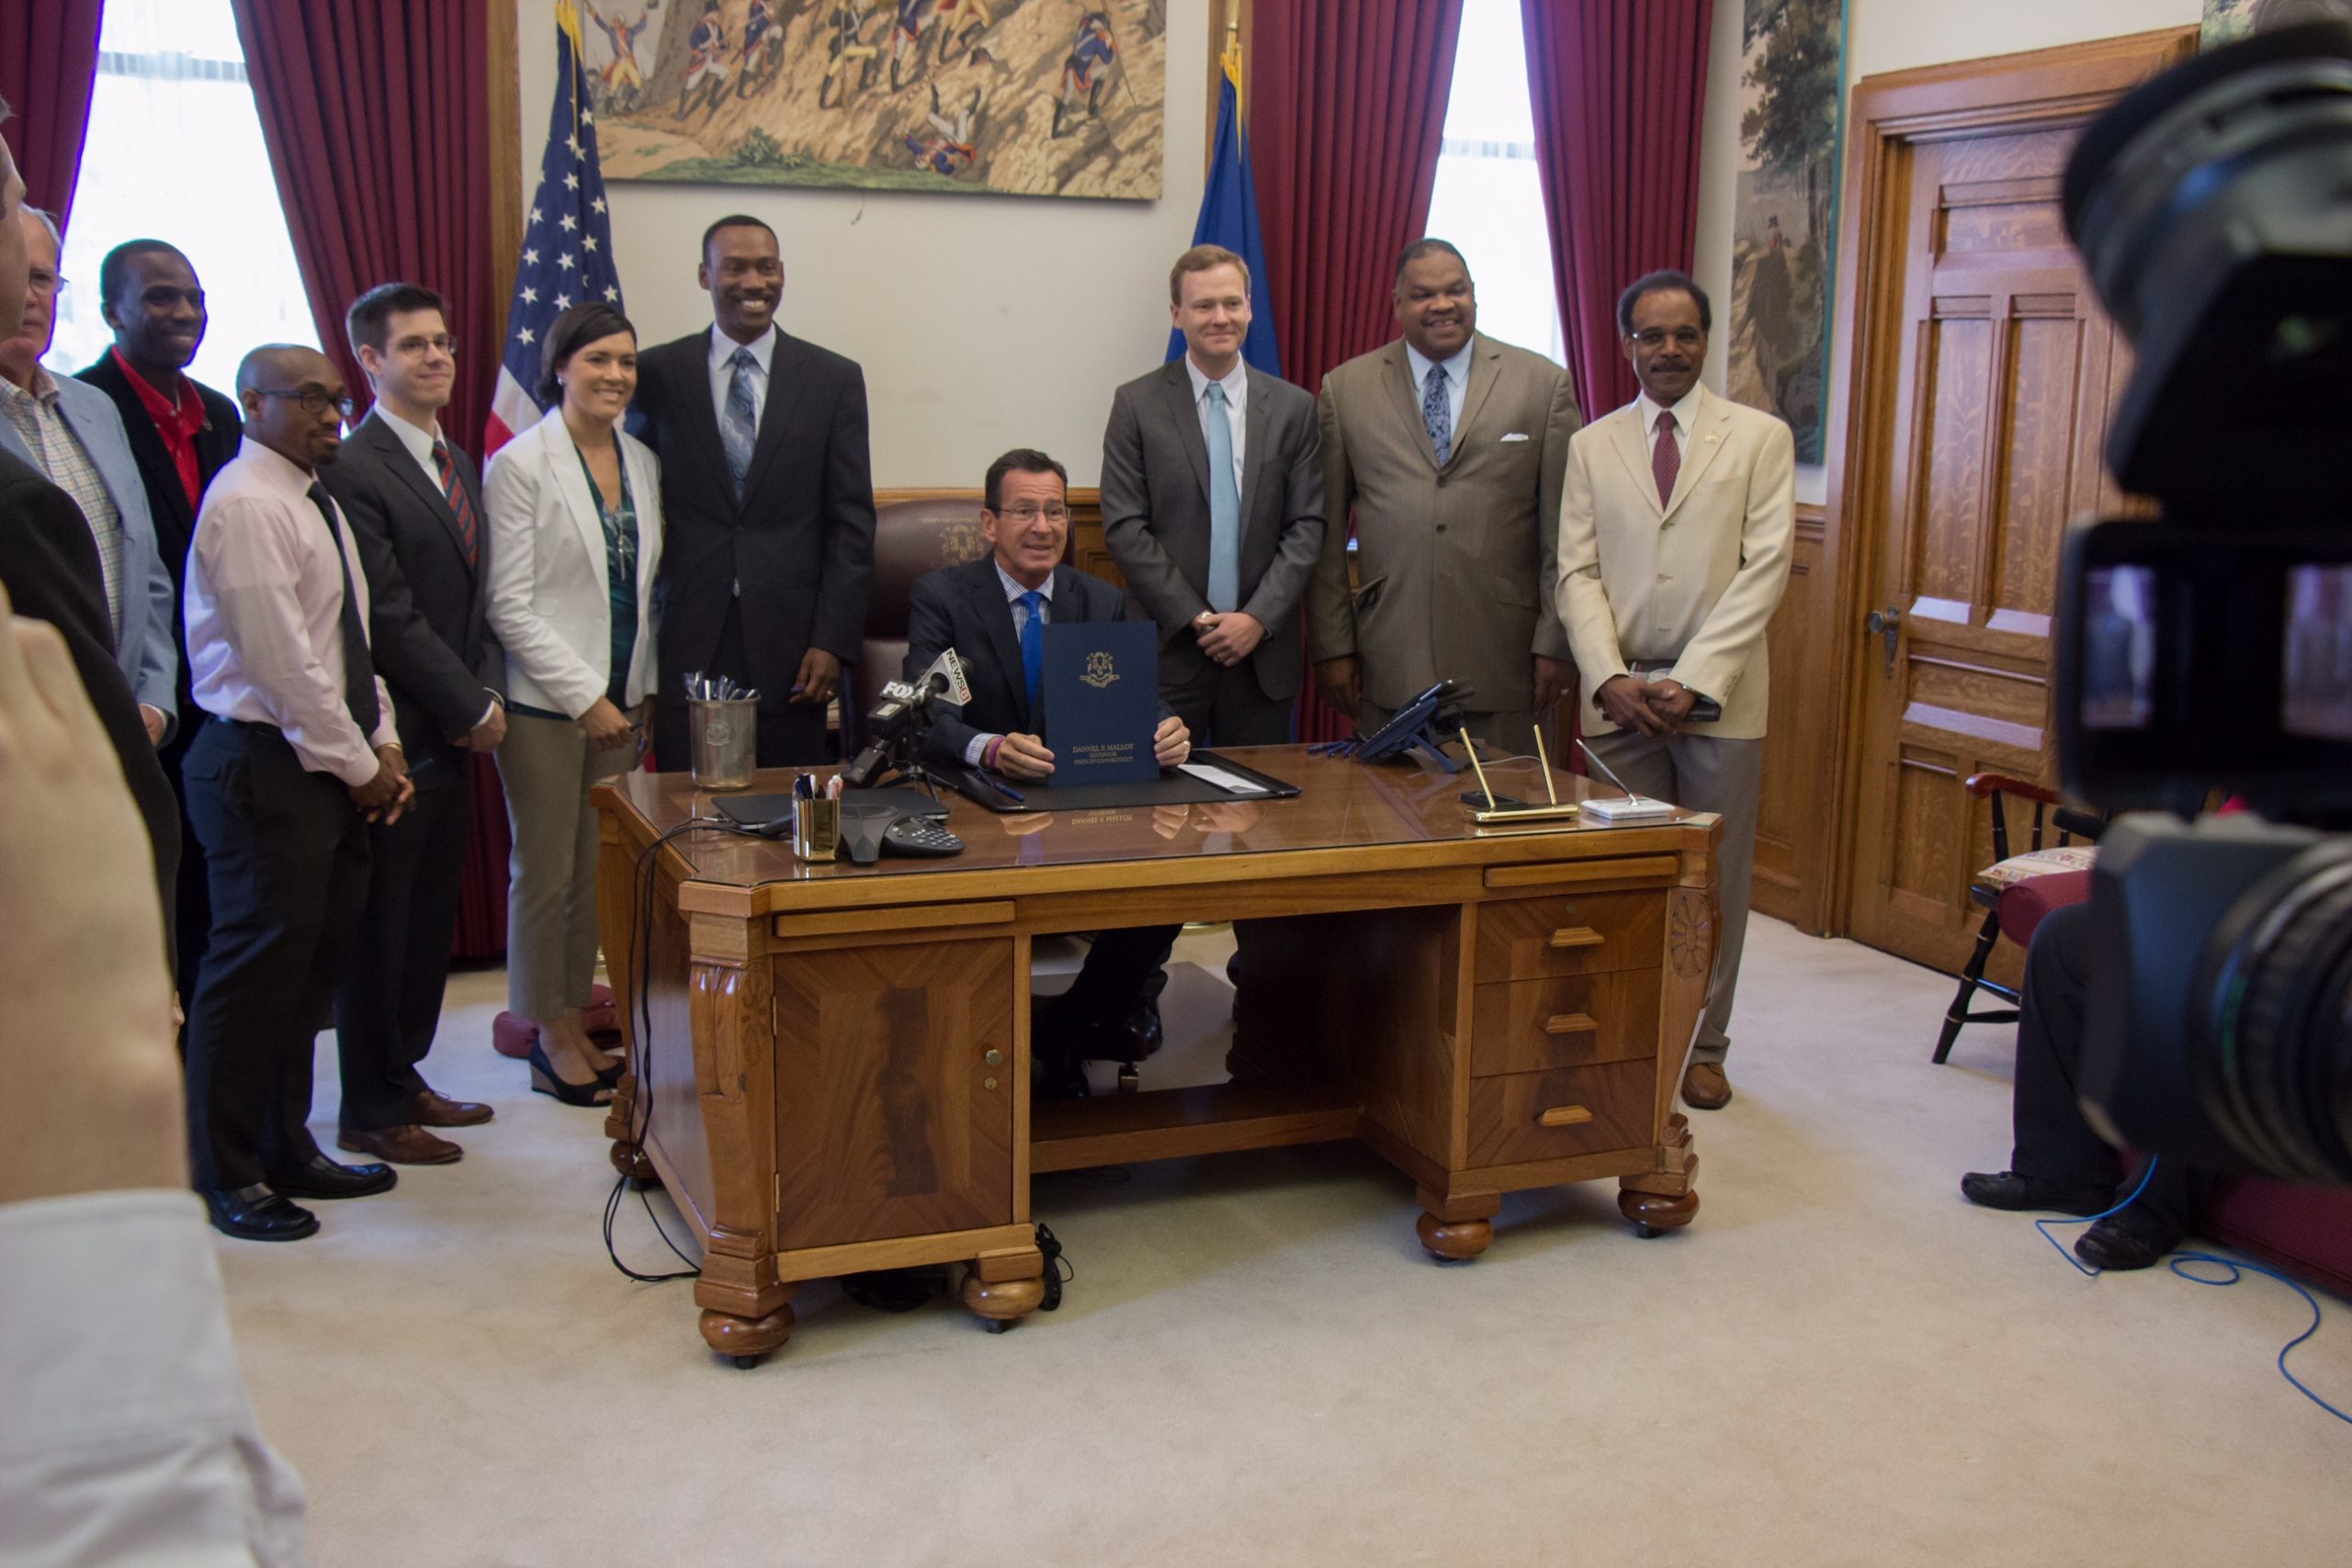 Governor Malloy signs bill